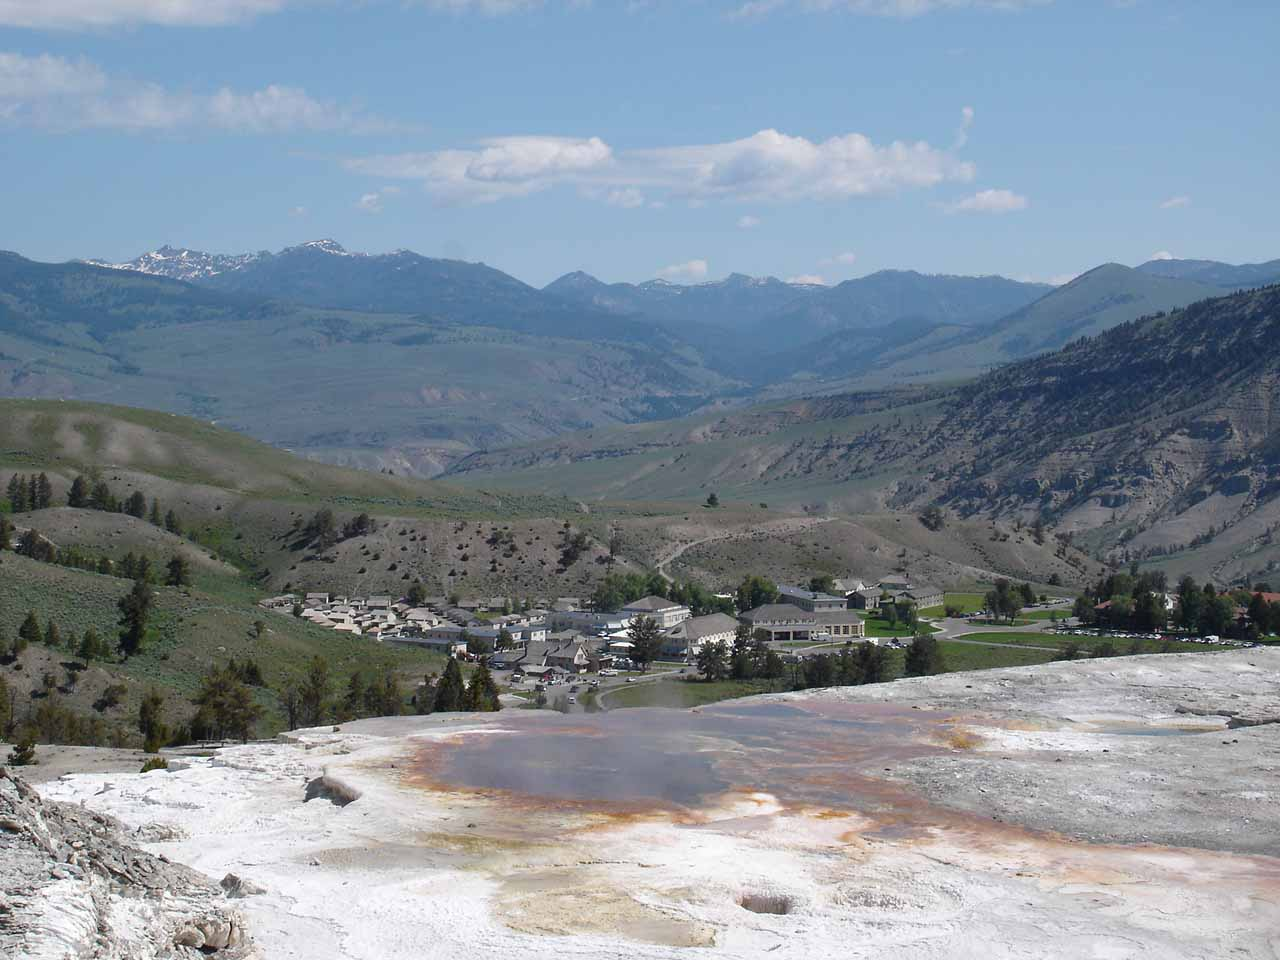 Big Sky was also not too far from the north entrance to Yellowstone National Park, where the Mammoth Hot Springs area was located